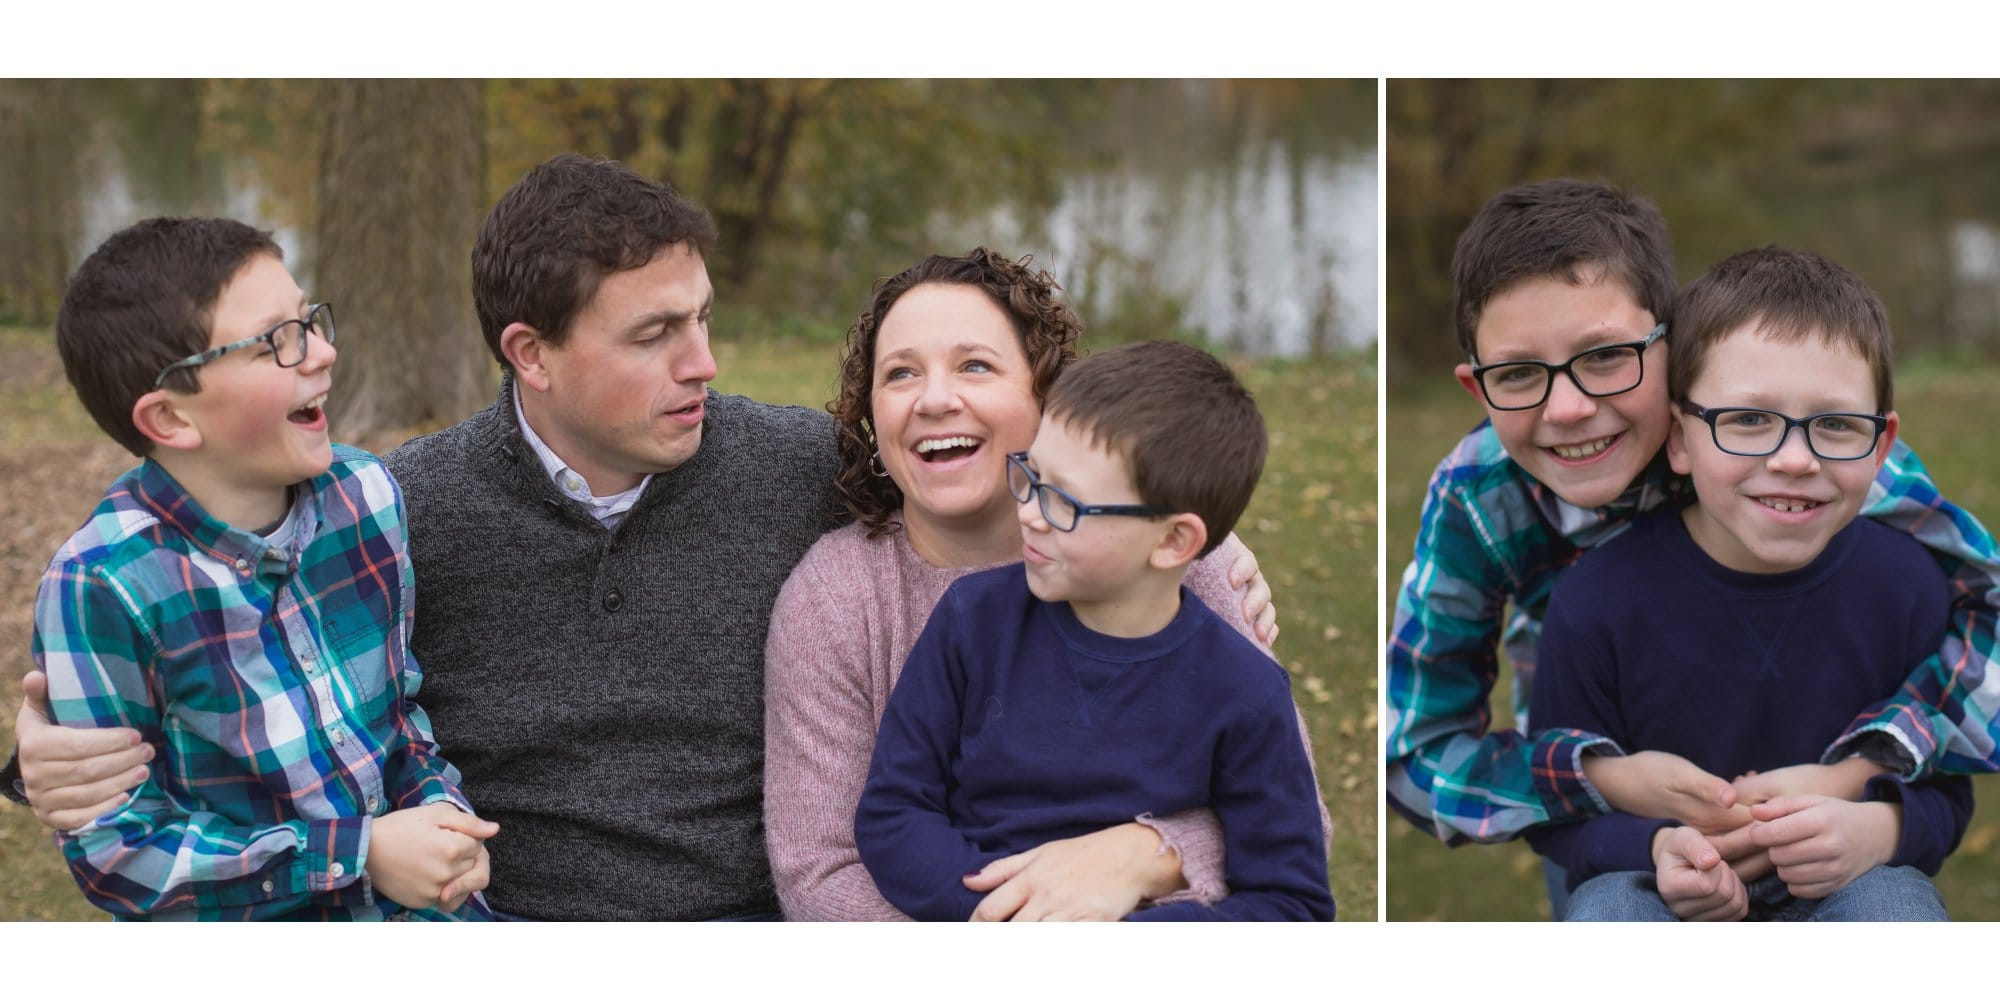 Markwald Family Pictures 2017 L